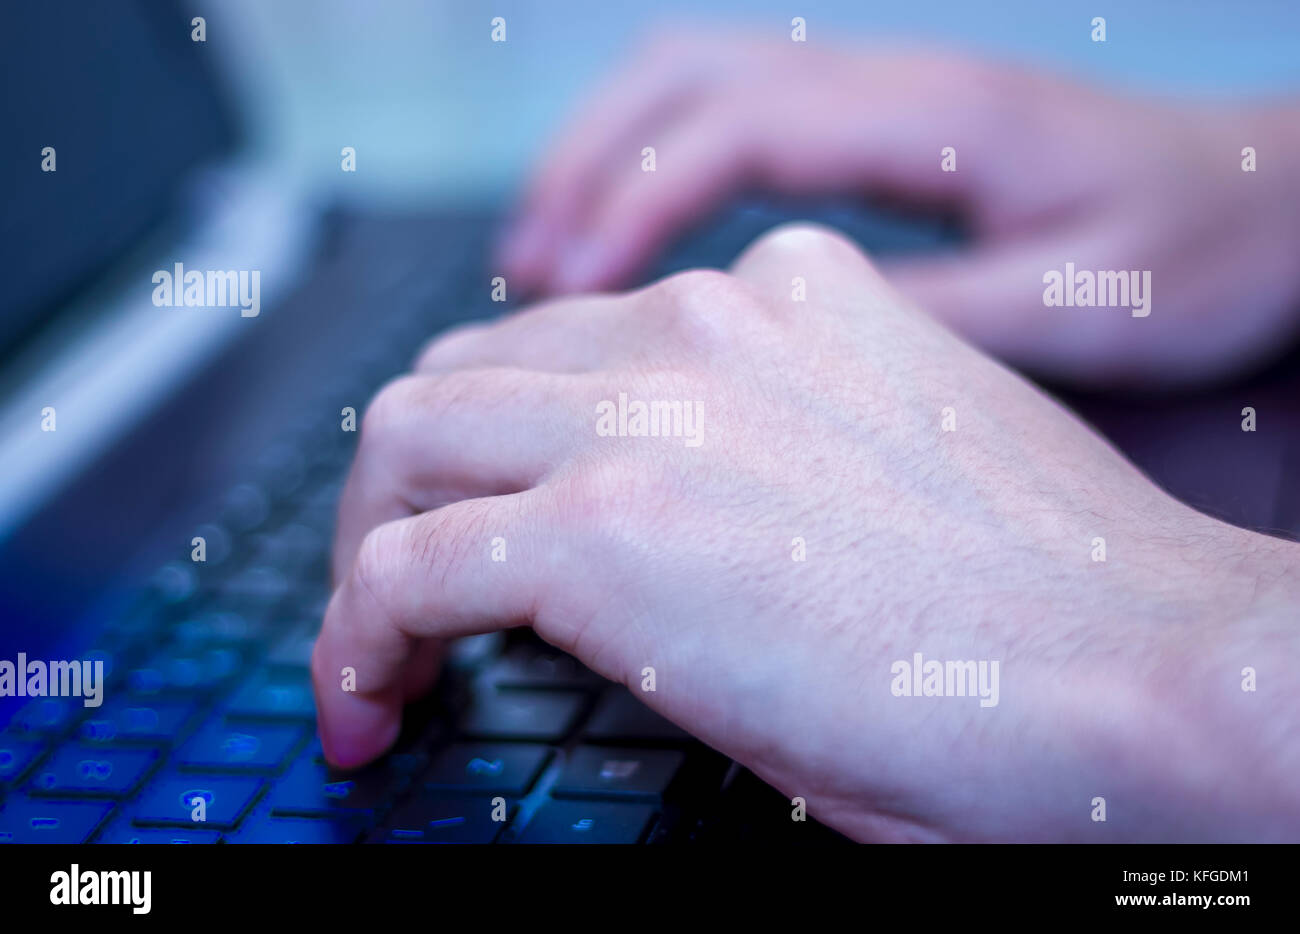 mans hands typing on keyboard - Stock Image